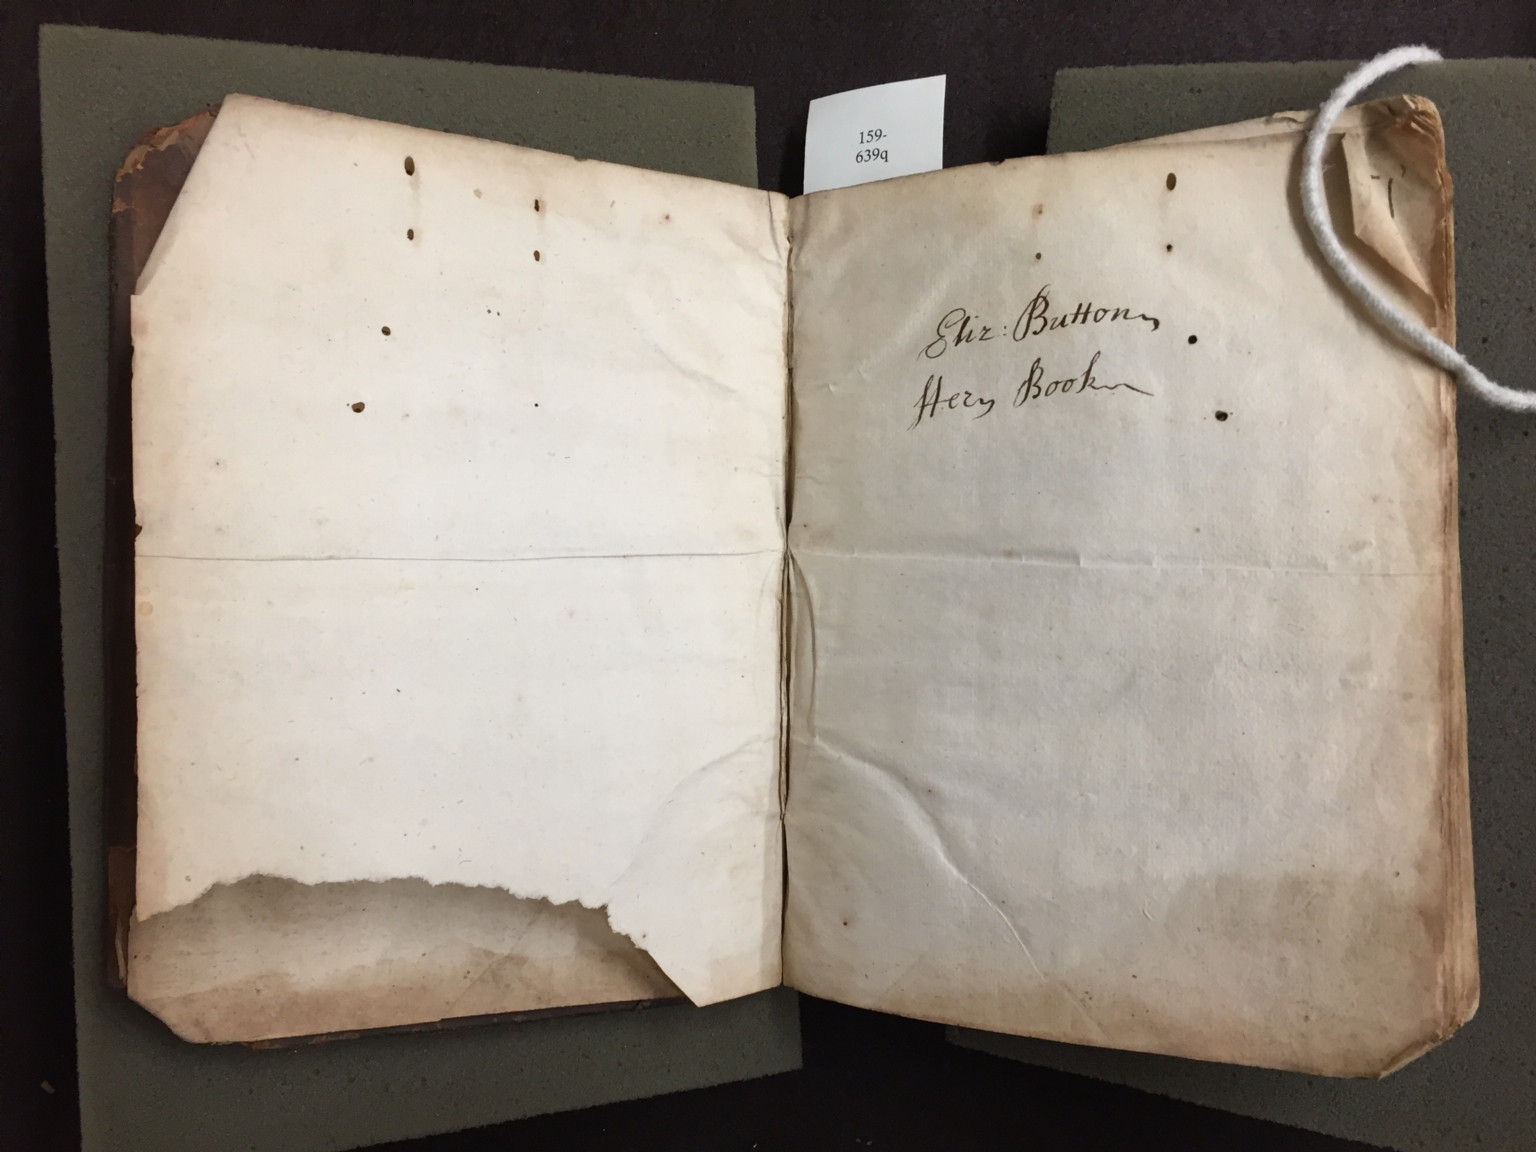 A collection of certain epistles & testimonies of divine consolation, experience and doctrine, written by that faithful, patient and long-suffering servant of Christ, William Bennit. Who finished his testimony the 23d day of the 4th month 1684. In the county goal at Ipswich in Suffolk.